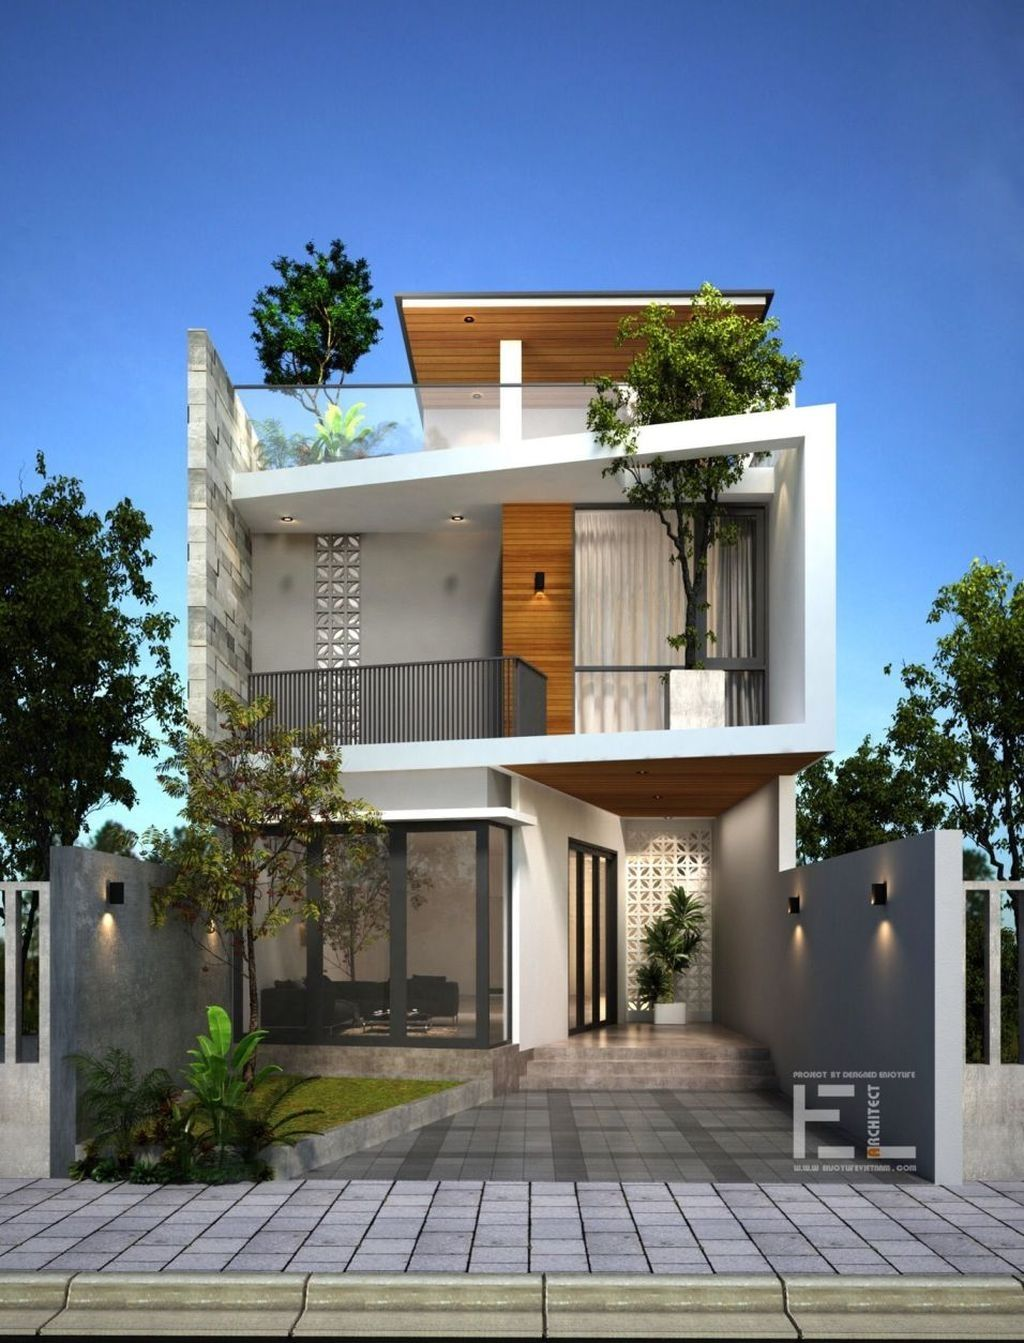 38 Awesome Small Contemporary House Designs Ideas To Try